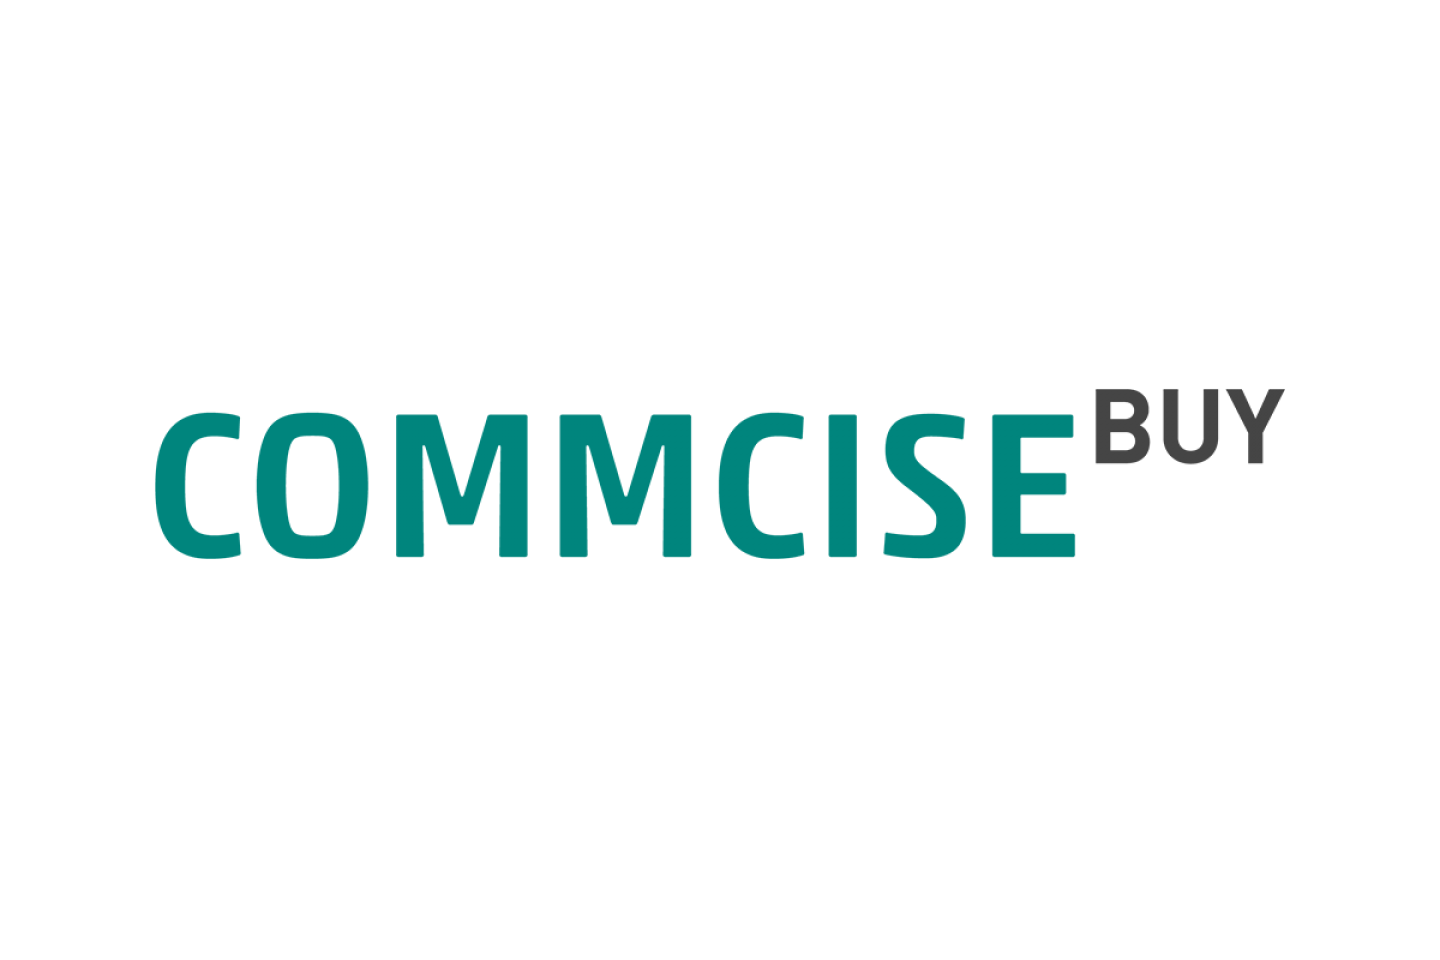 Commcise BUY